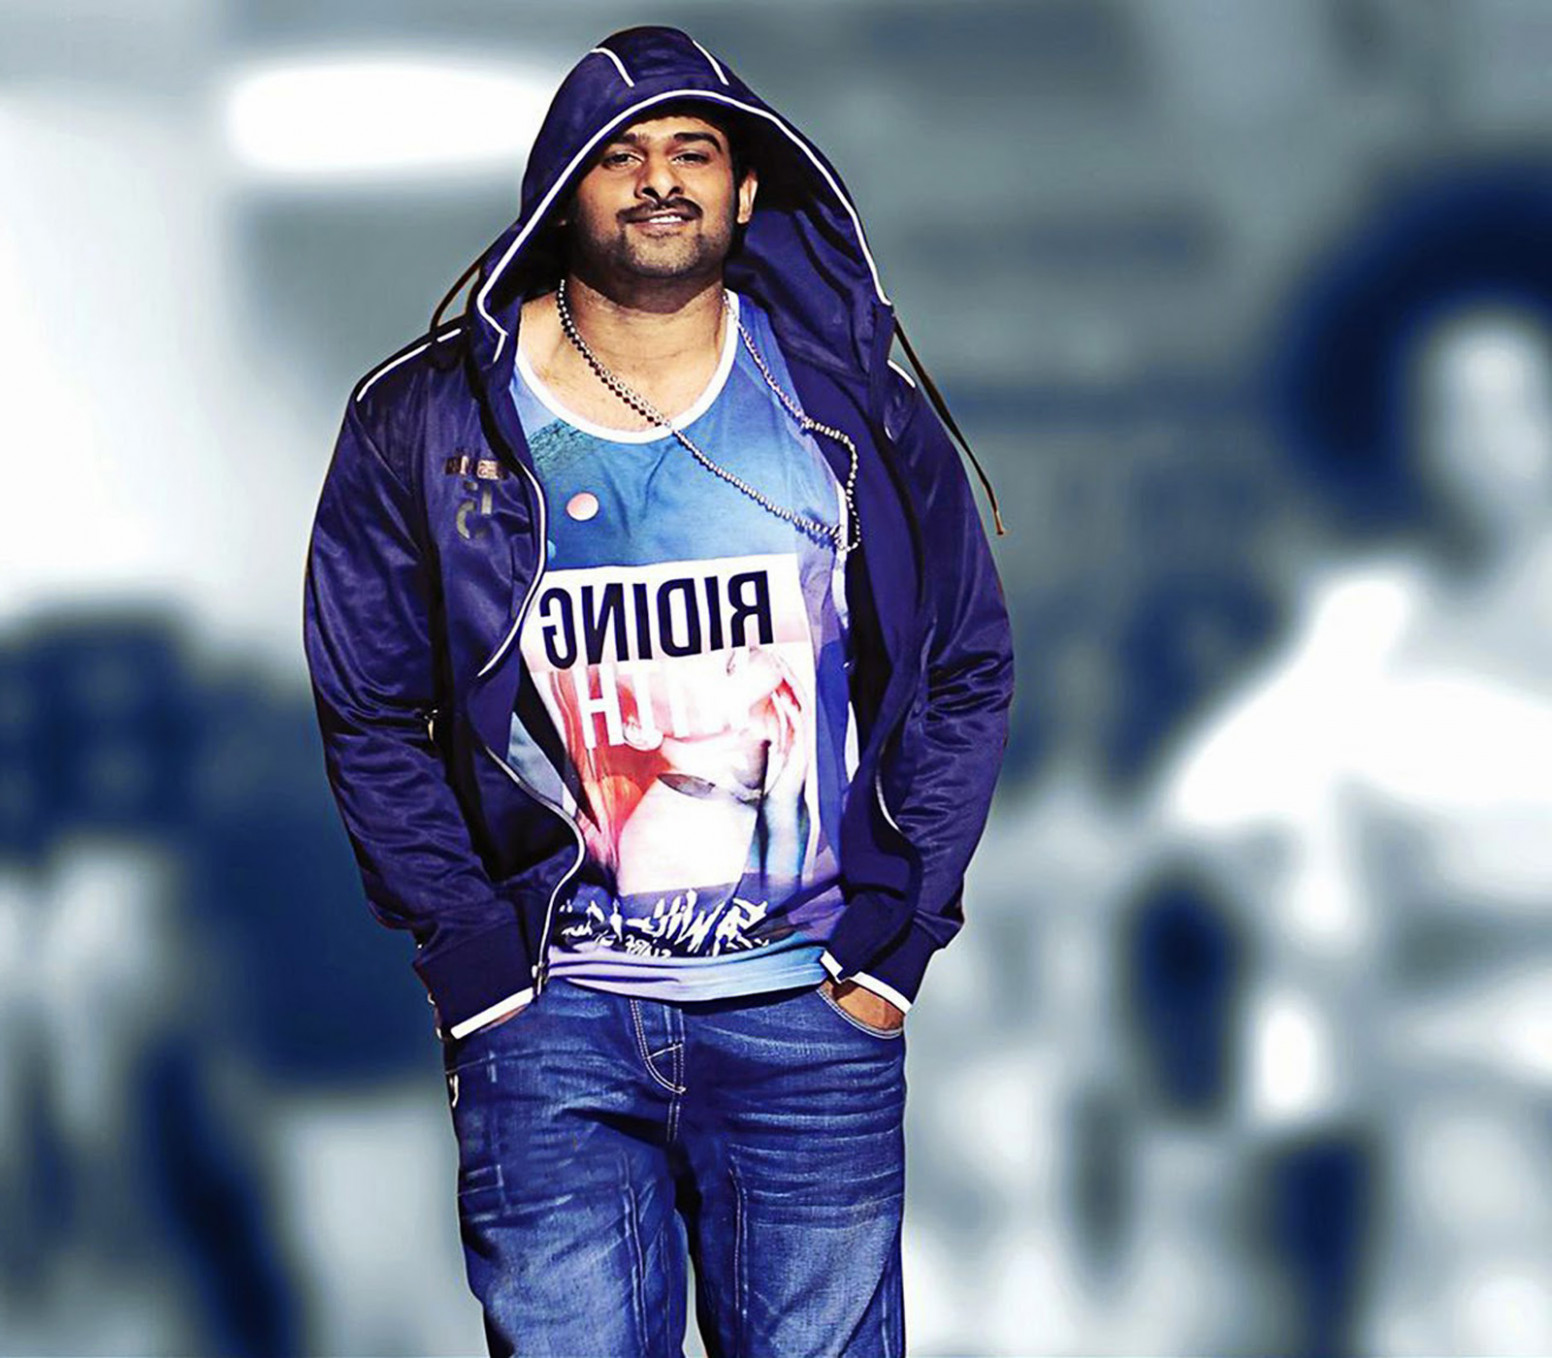 Stylist tollywood actor prabhas in jeans and jacket high ...